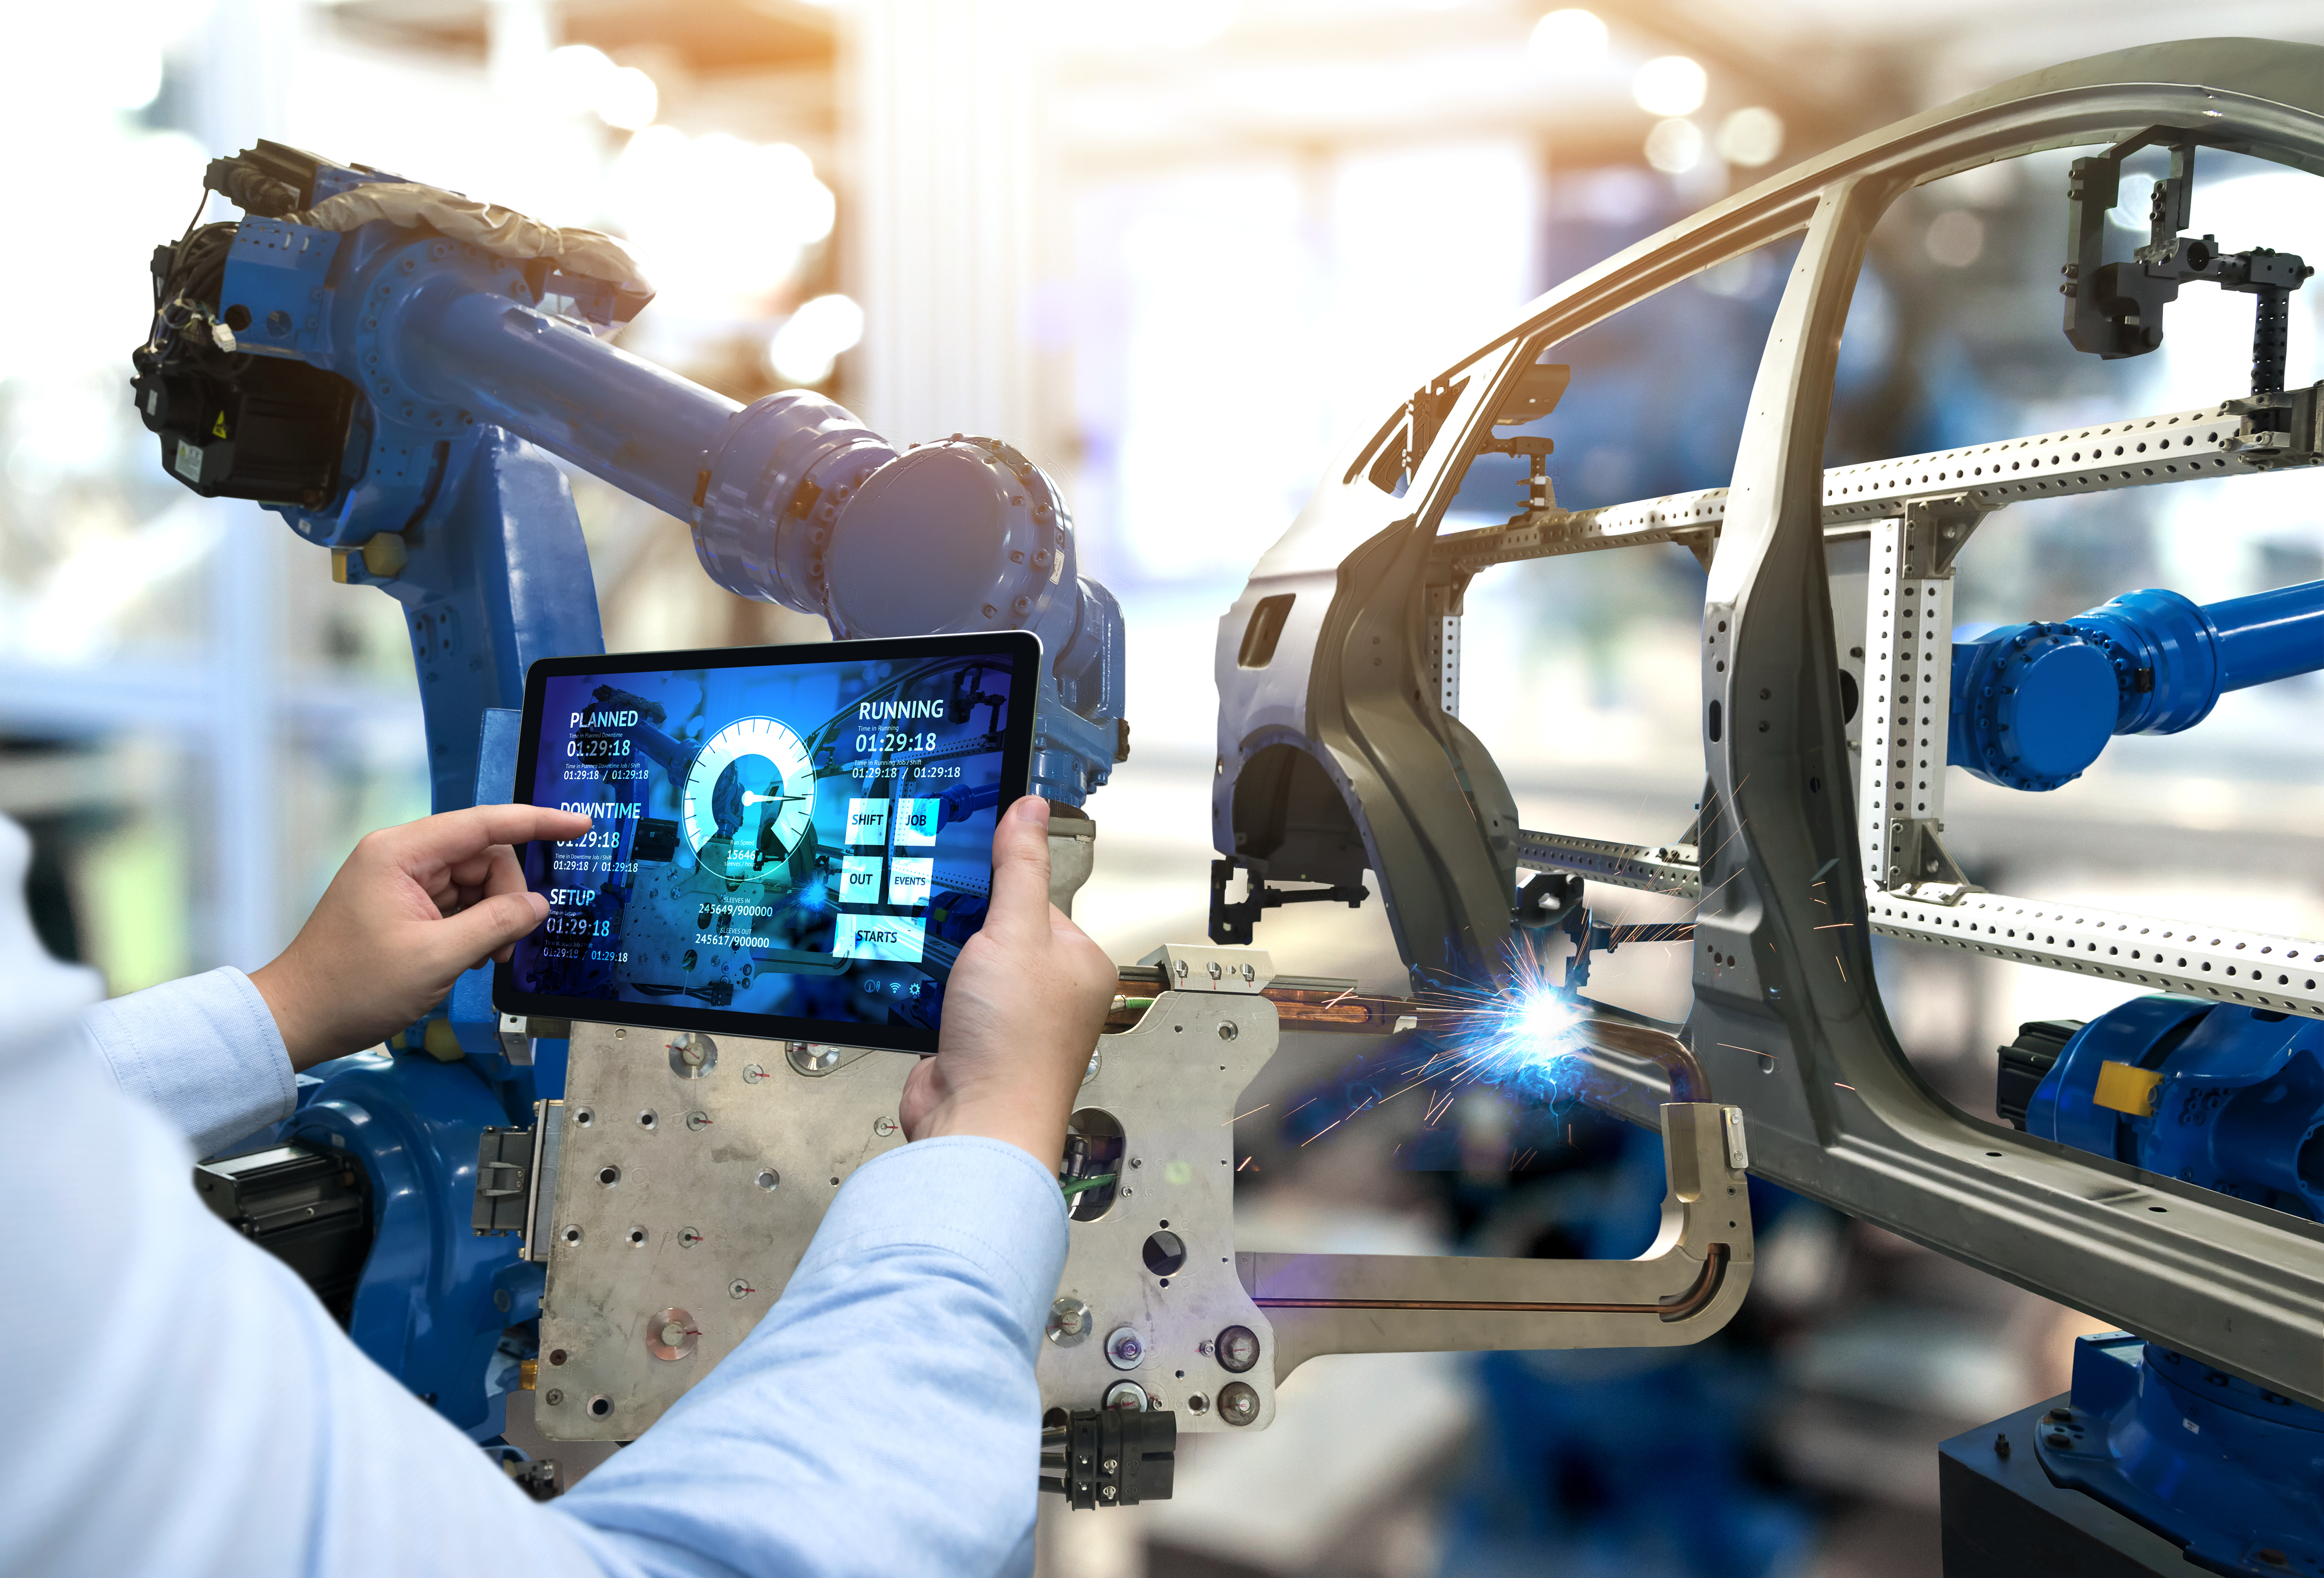 Engineering outsourcing in the automotive industry